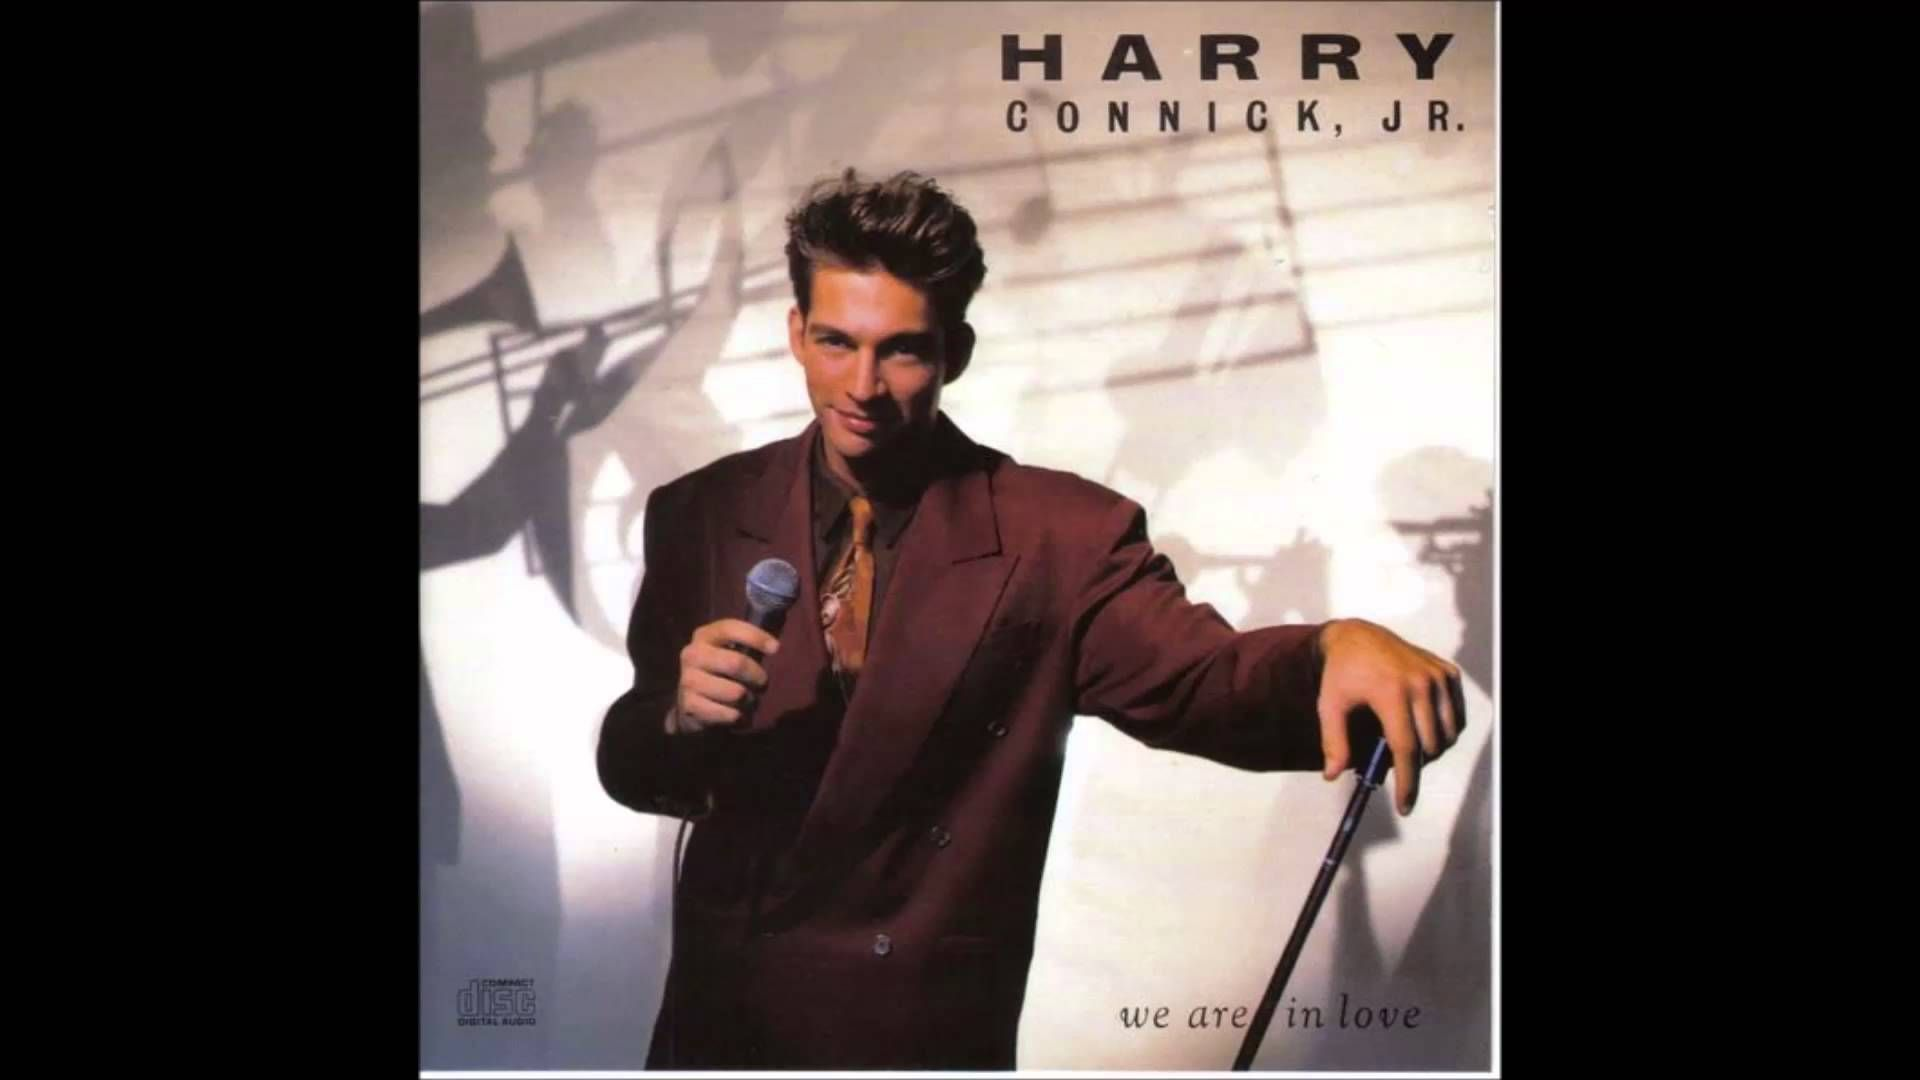 Harry connick jr its alright with me music love love